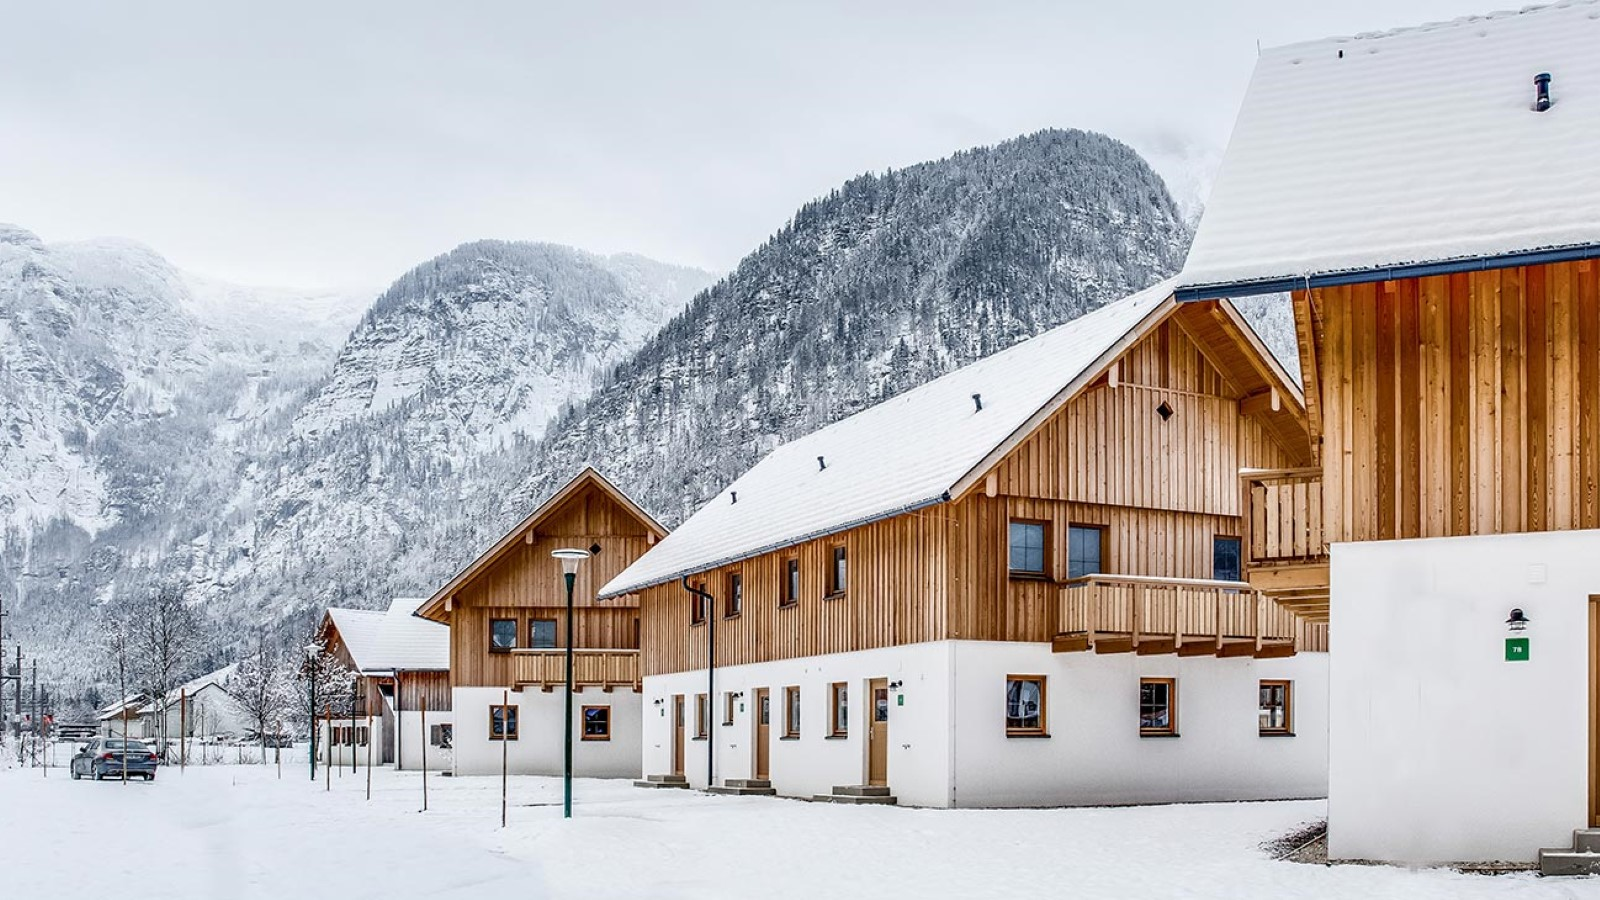 Chalet Grundlsee - 3 chambres